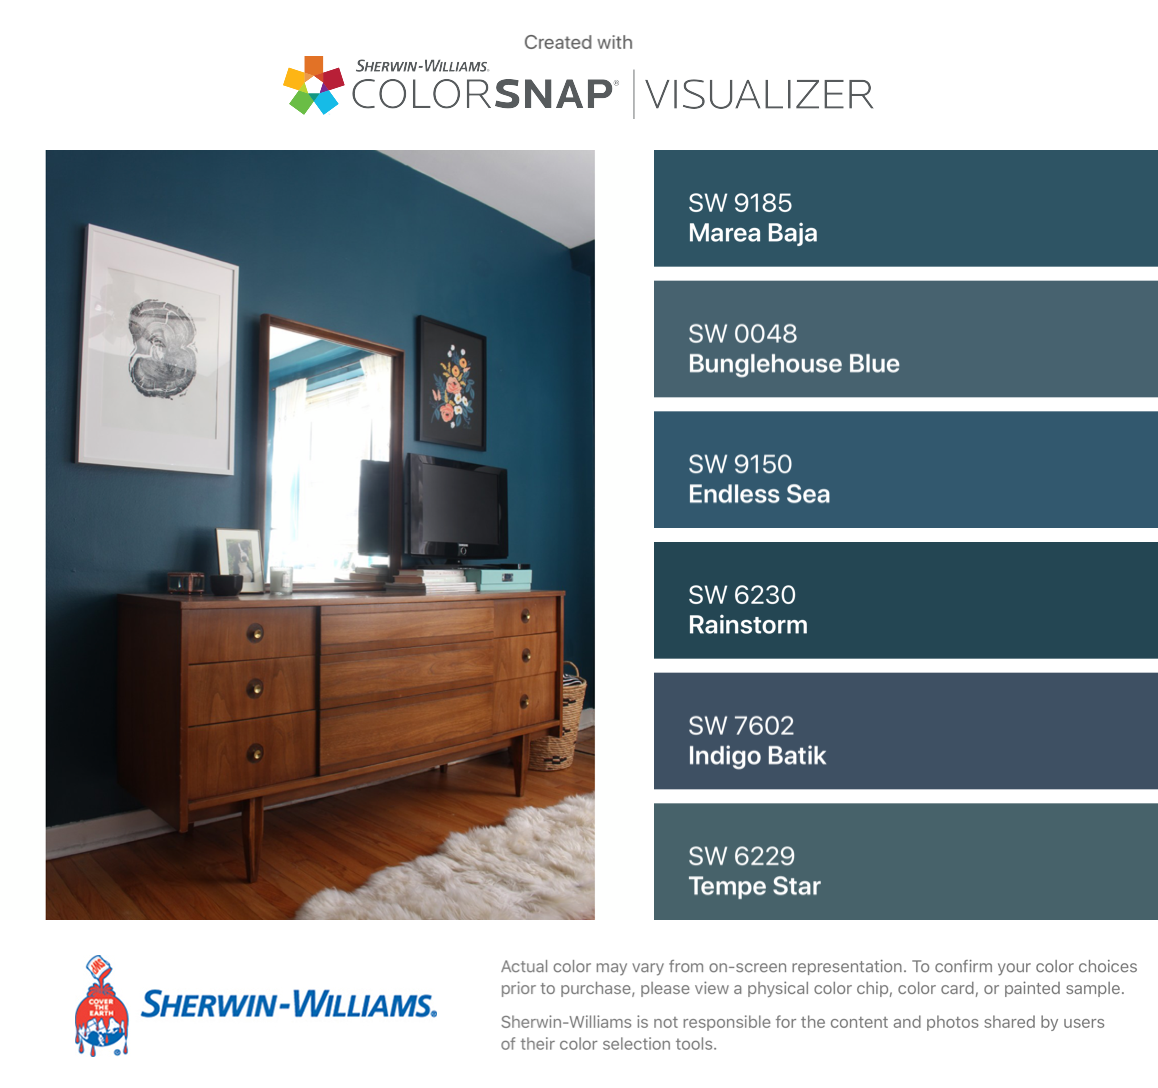 I Found These Colors With Colorsnap Visualizer For Iphone By Sherwin Williams Marea Baja Blue Master Bedroom Dining Room Paint Colors Paint Colors For Home